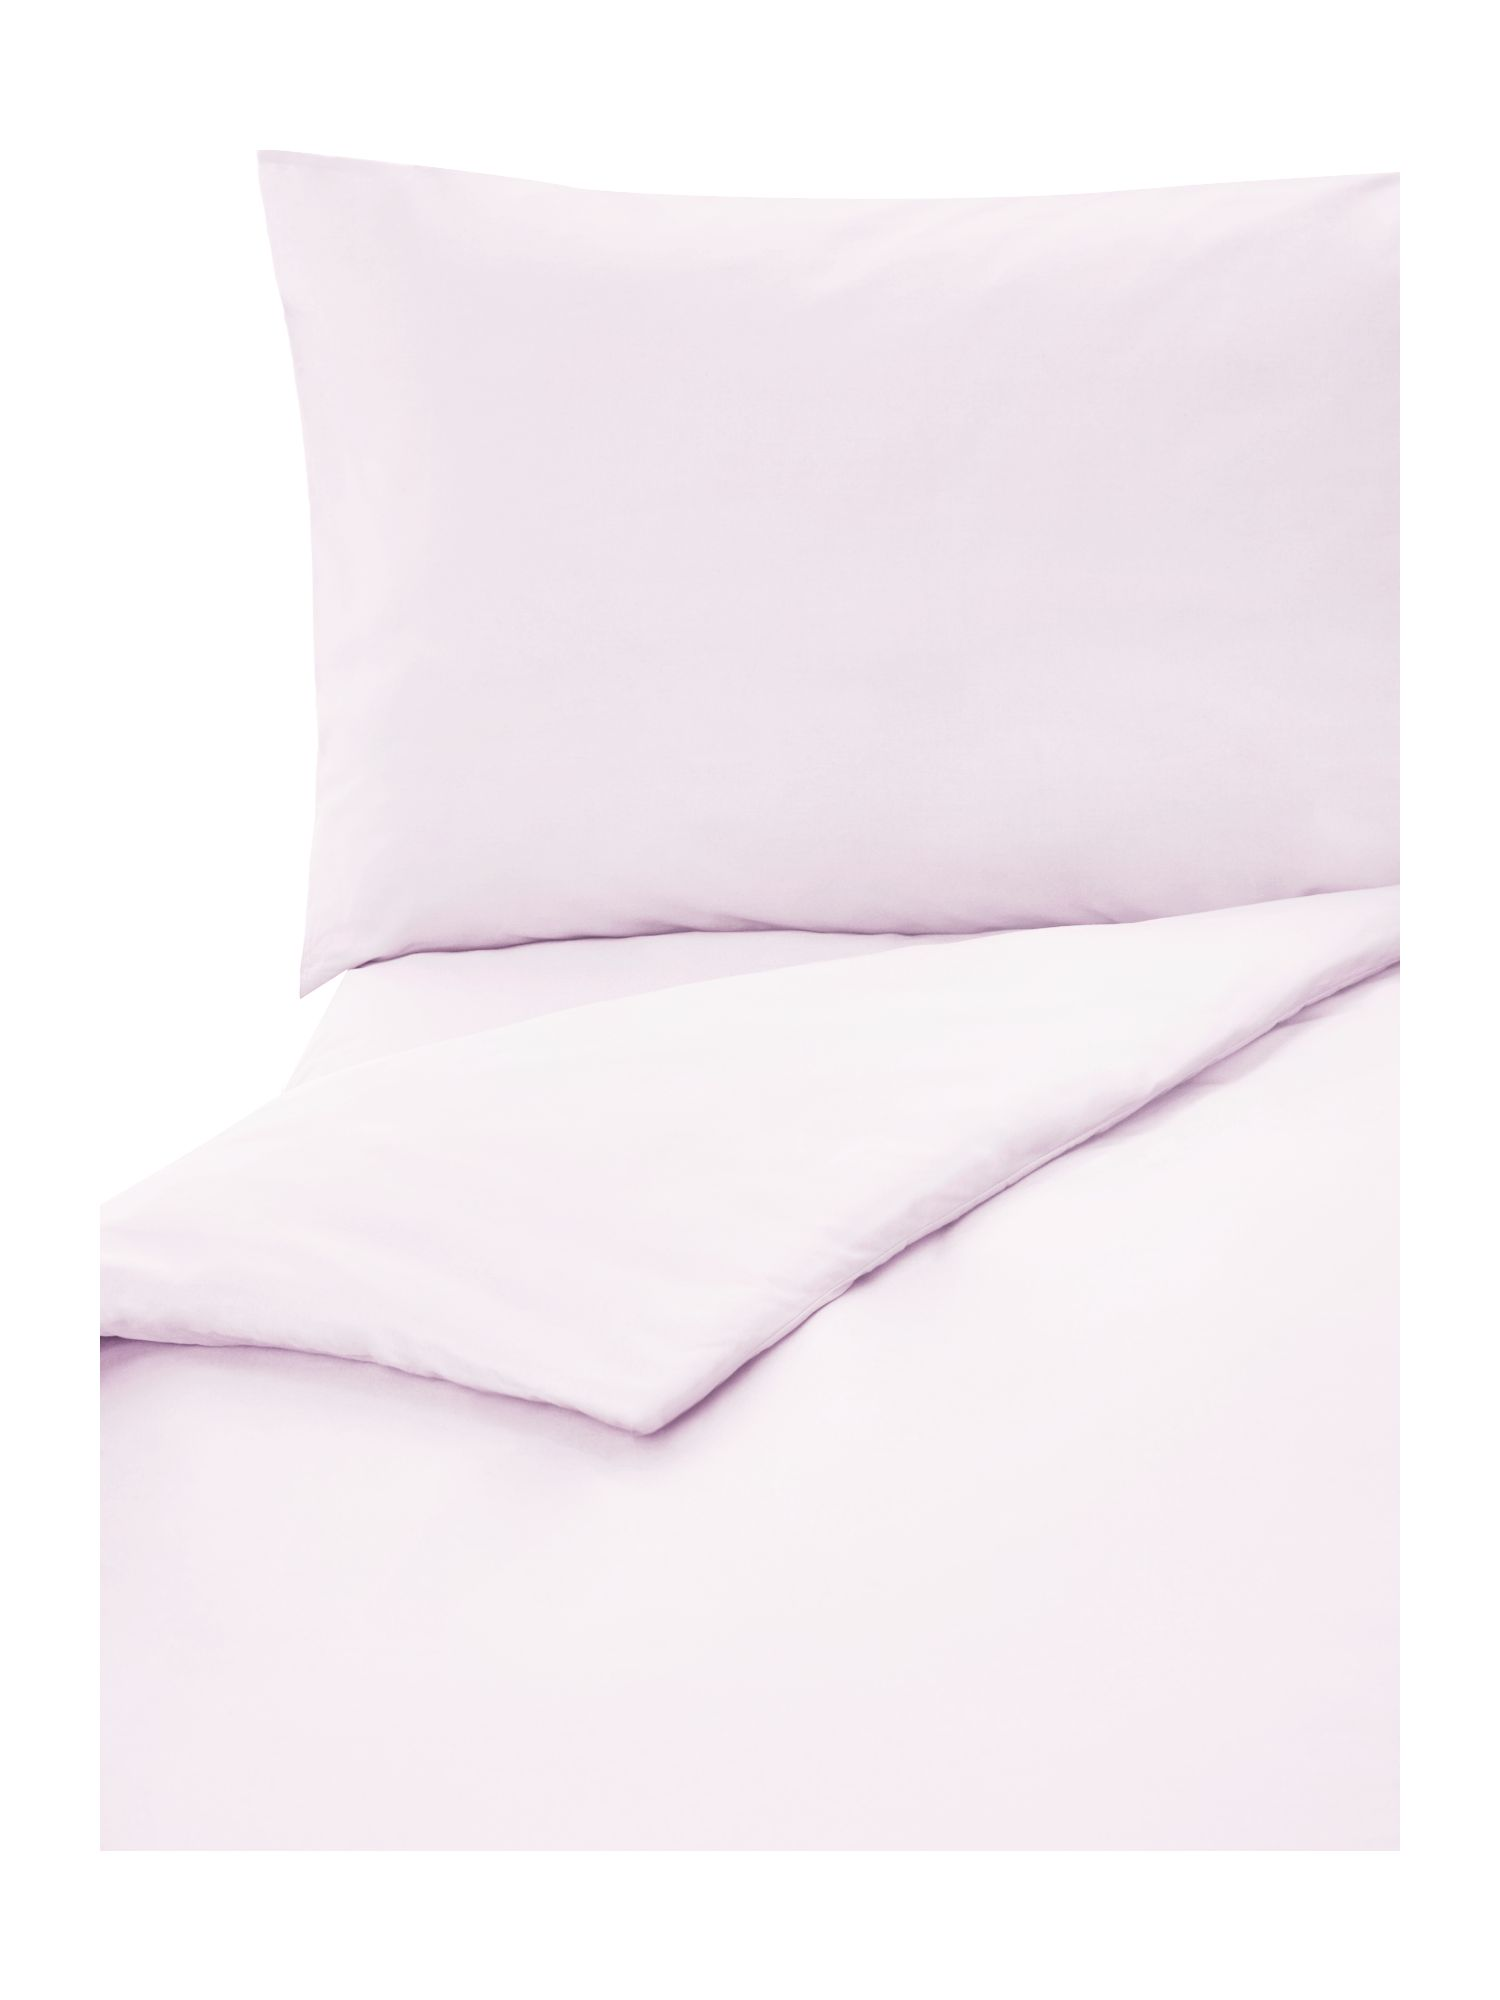 Bubble gum plain dye bed linen